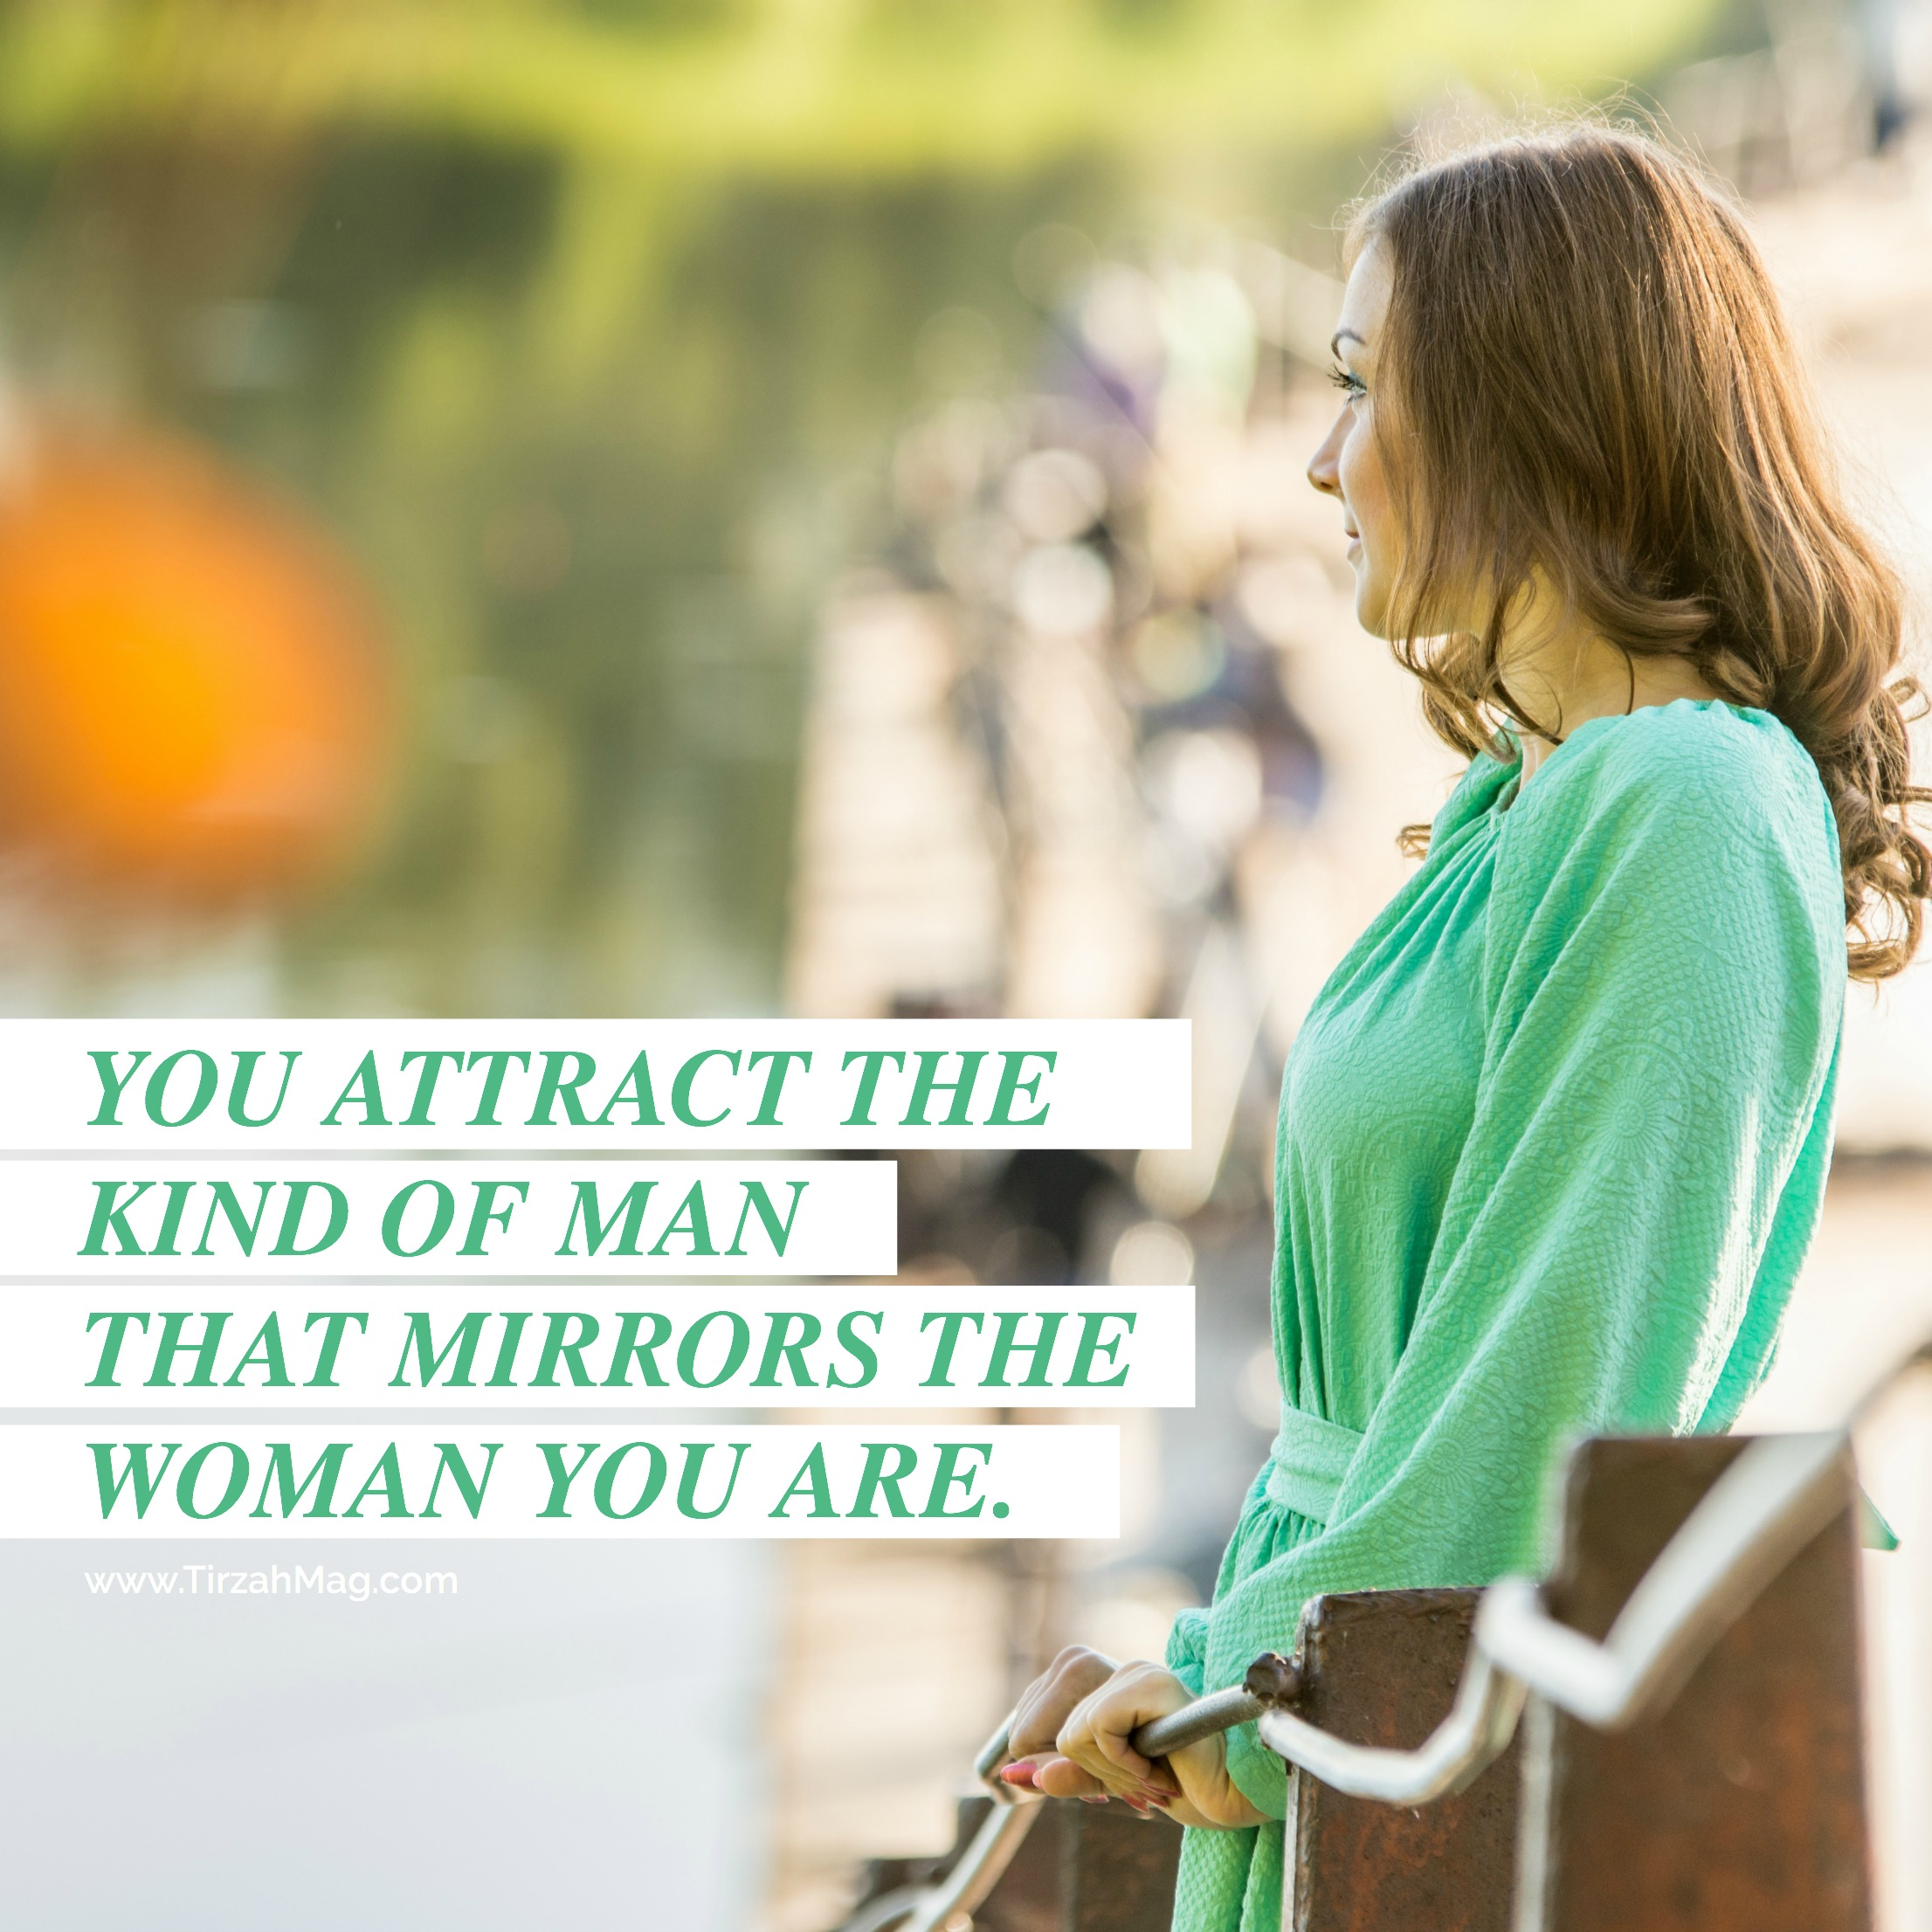 Don't settle! Find the man worthy of a woman like you